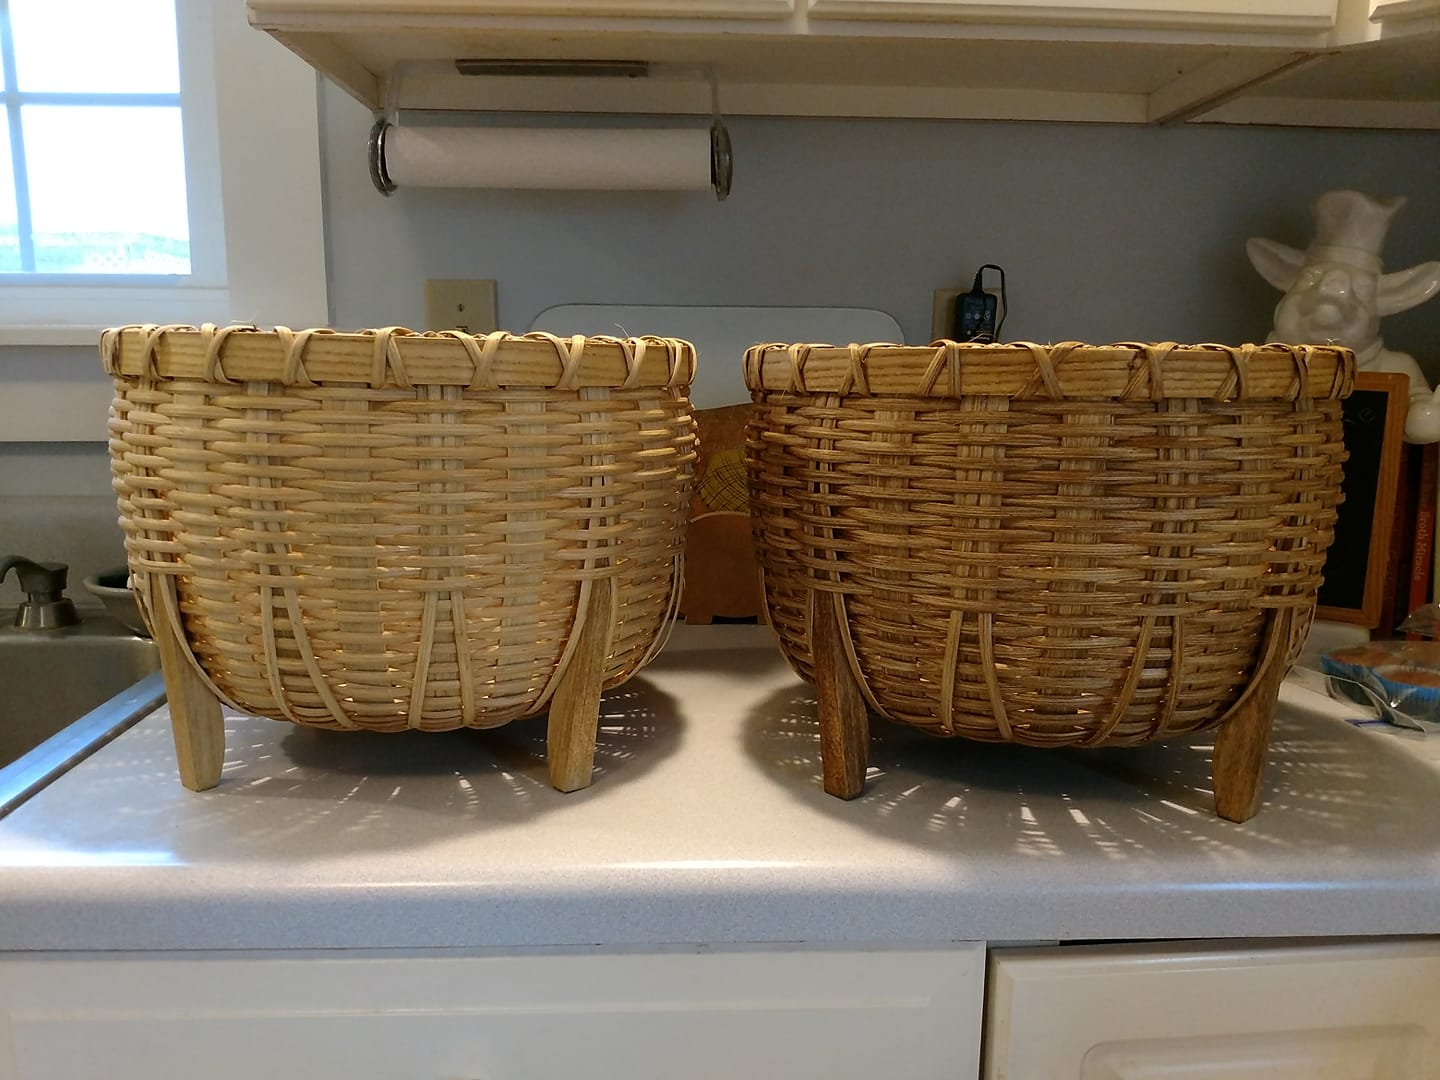 Wool Drying Baskets